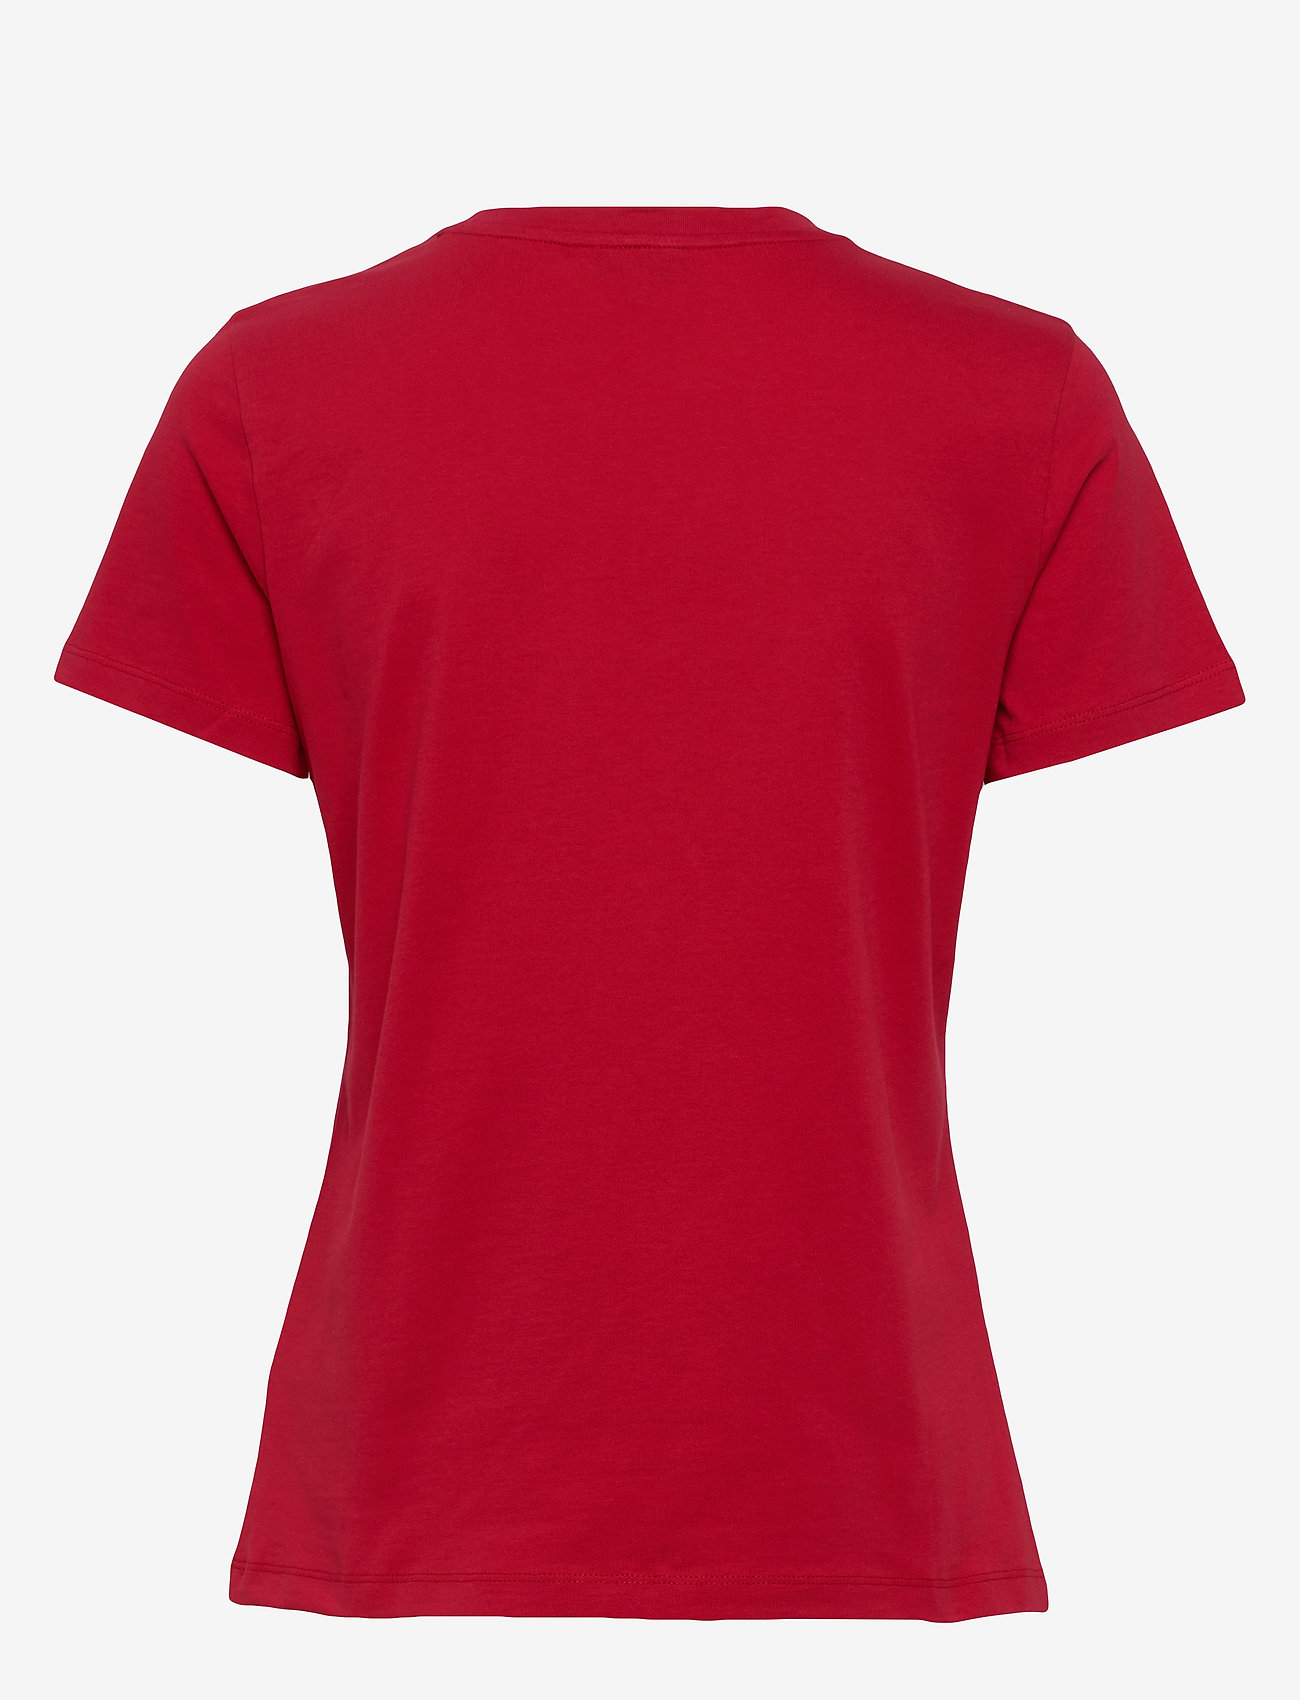 Tommy Hilfiger - NEW TH ESS HILFIGER - logo t-shirts - primary red